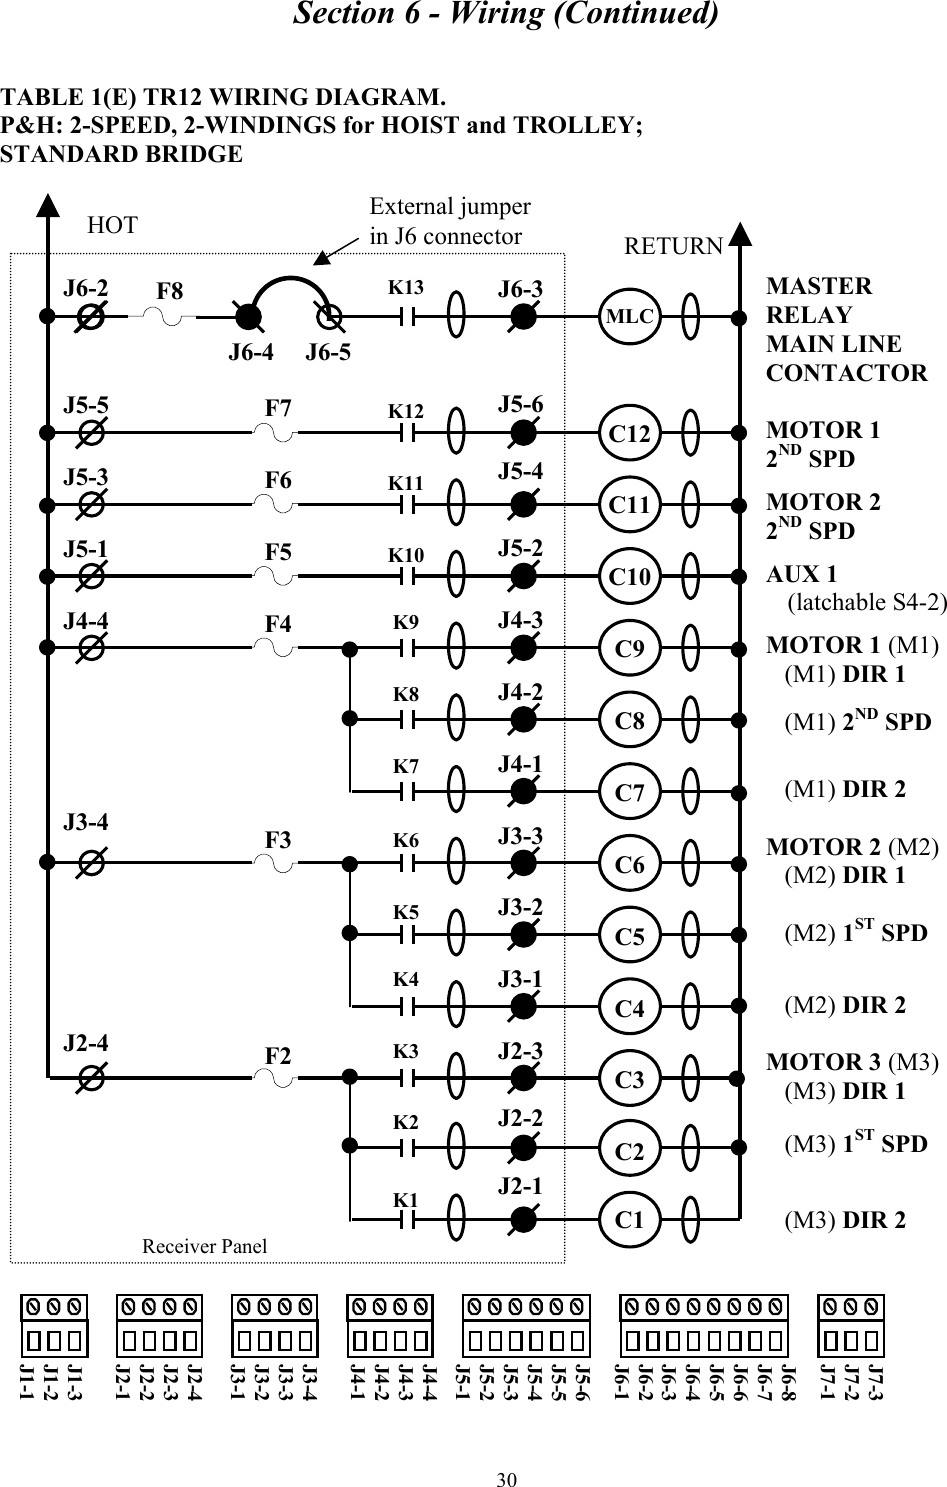 Telemotive Controls E10647 Remote Control Transmitter User Manual 2 Speed Hoist Wiring Diagram Section 6 Continued 30 Table 1e Tr12